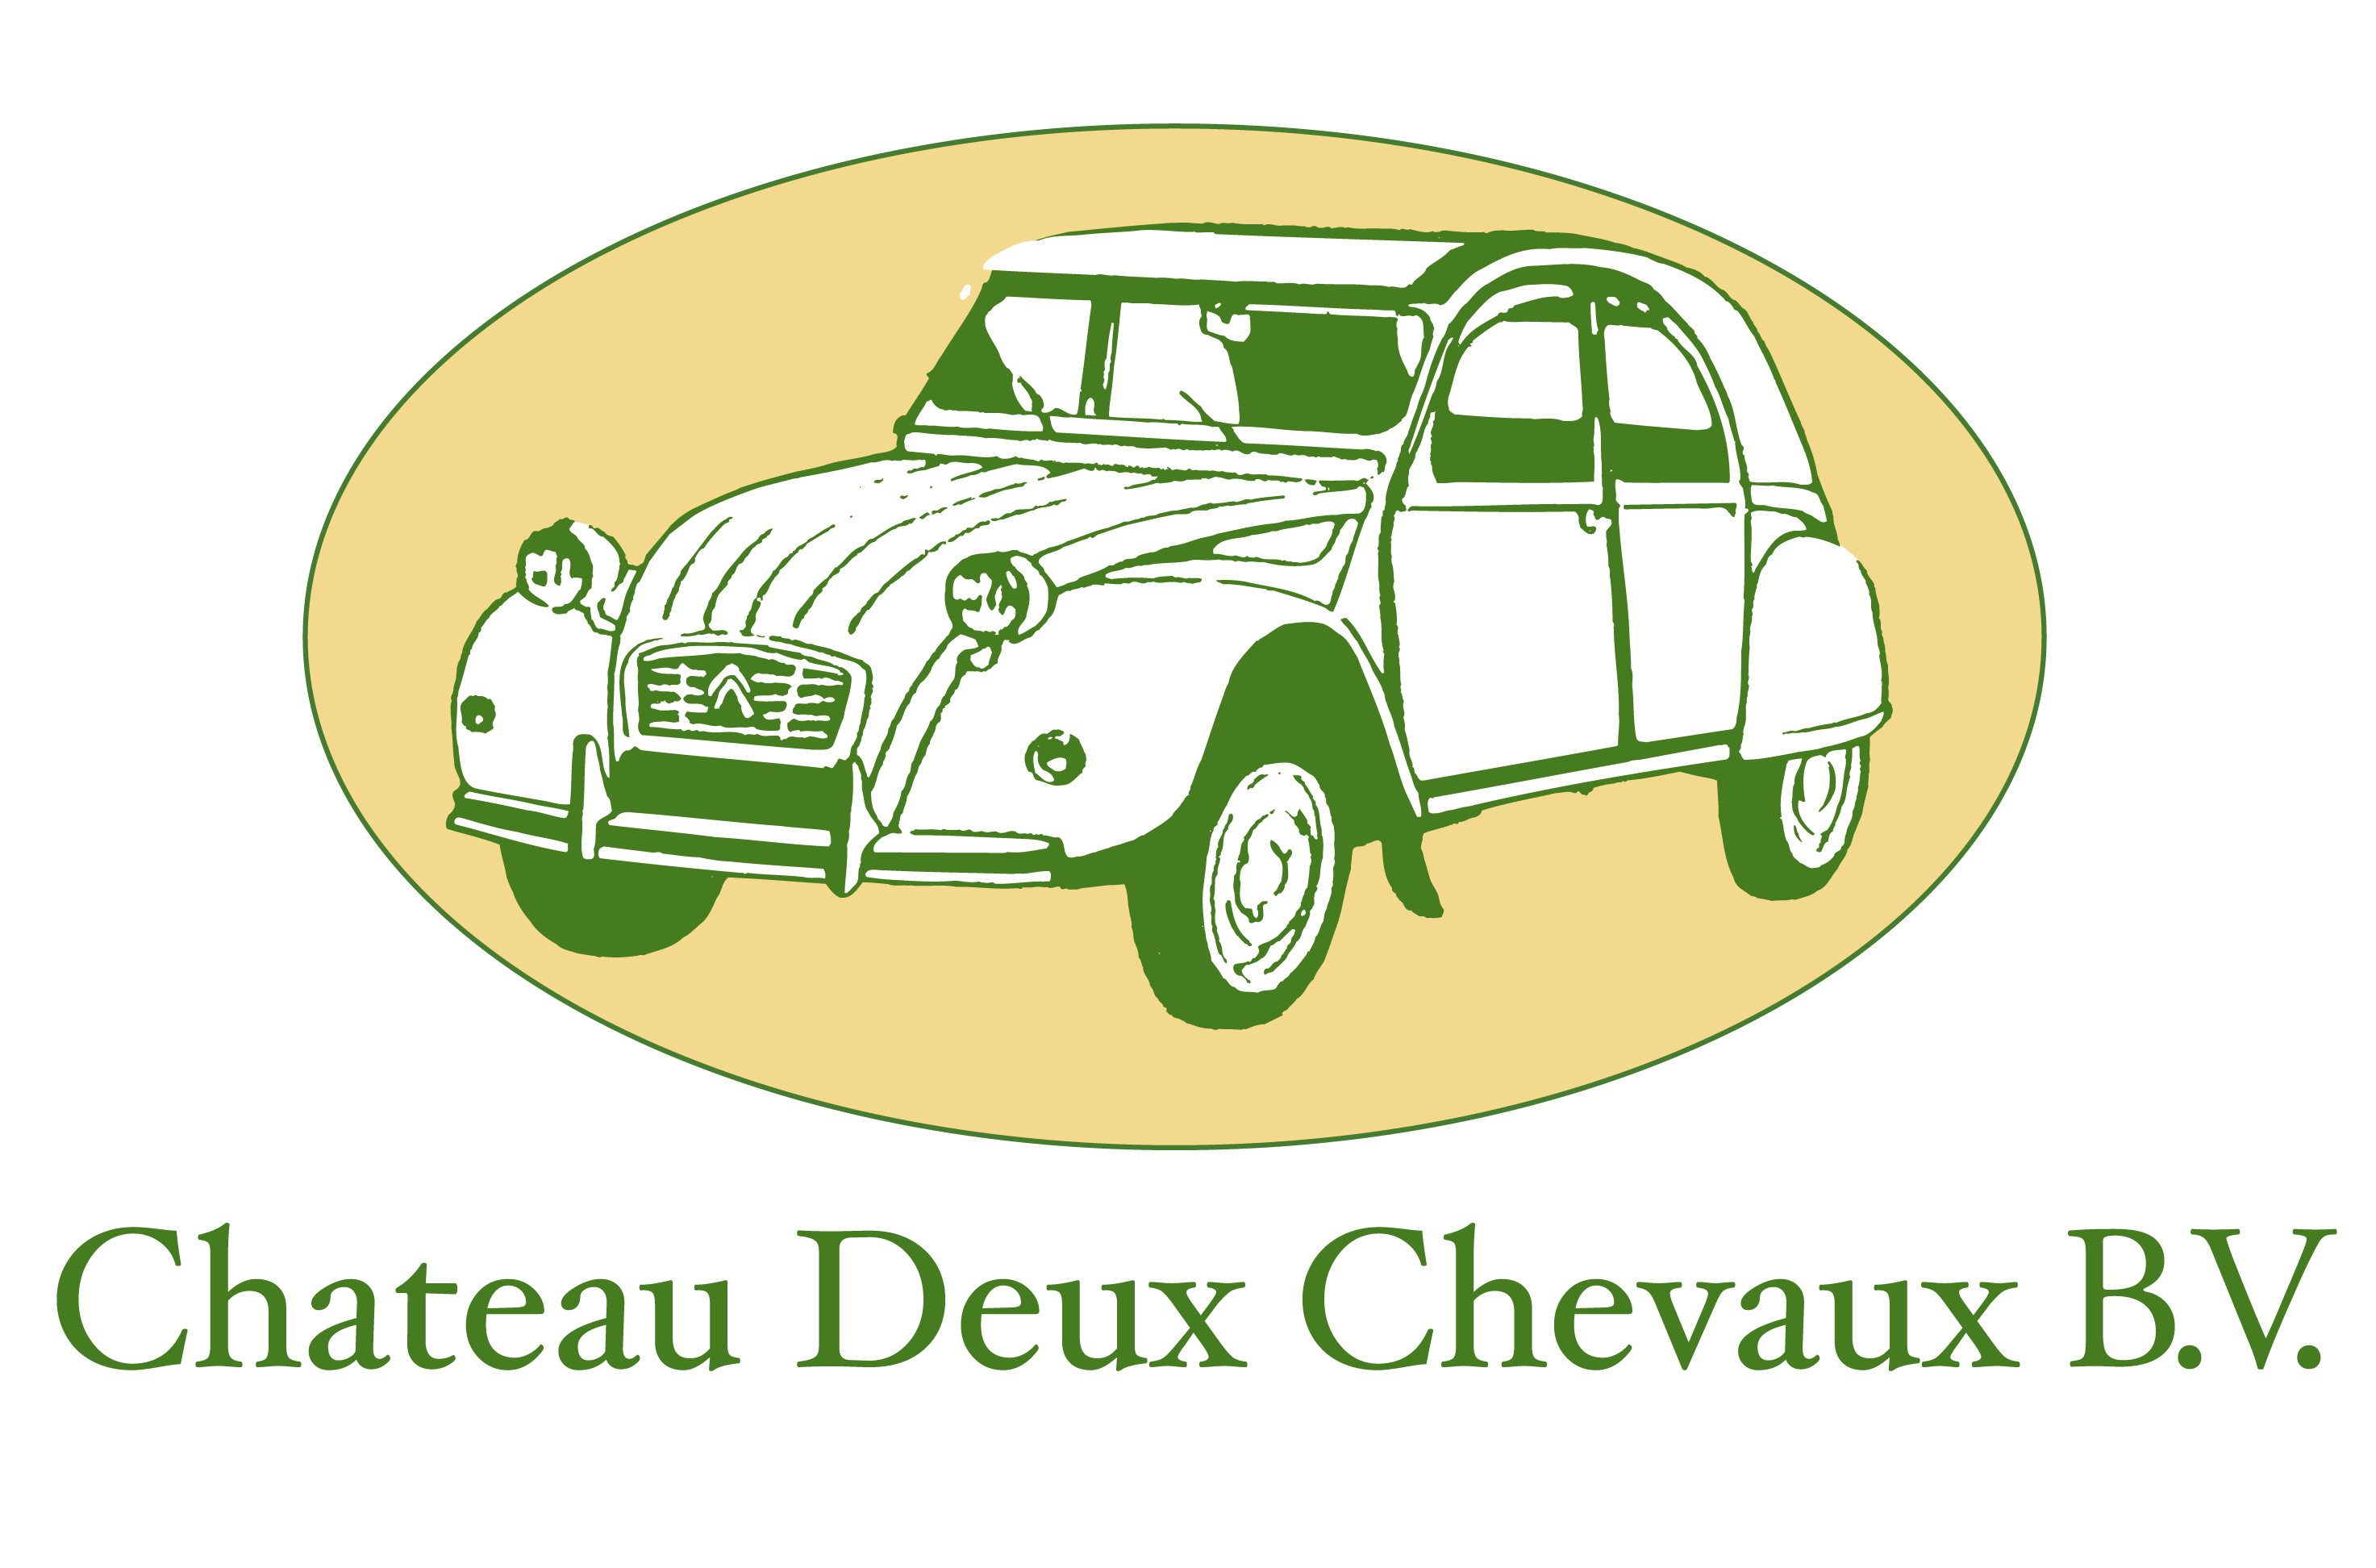 Chateau deux chevaux Beesd